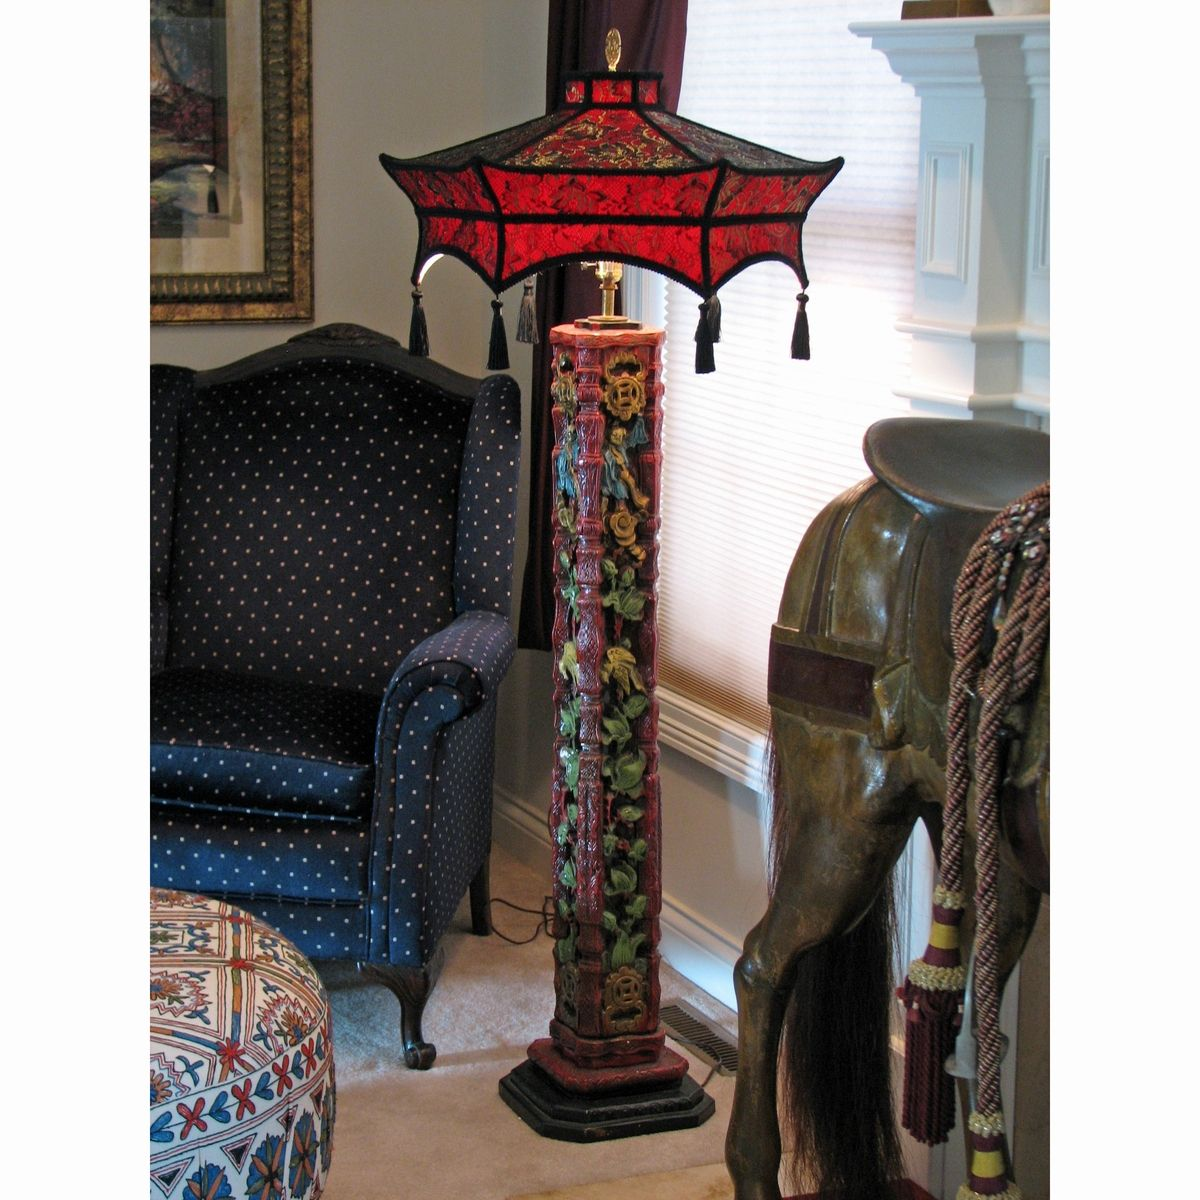 Mission style floor lamps when traditional meets contemporary taste gorgeous custom oriental red tone mission style floor lamps for living room dot motive small black aloadofball Gallery